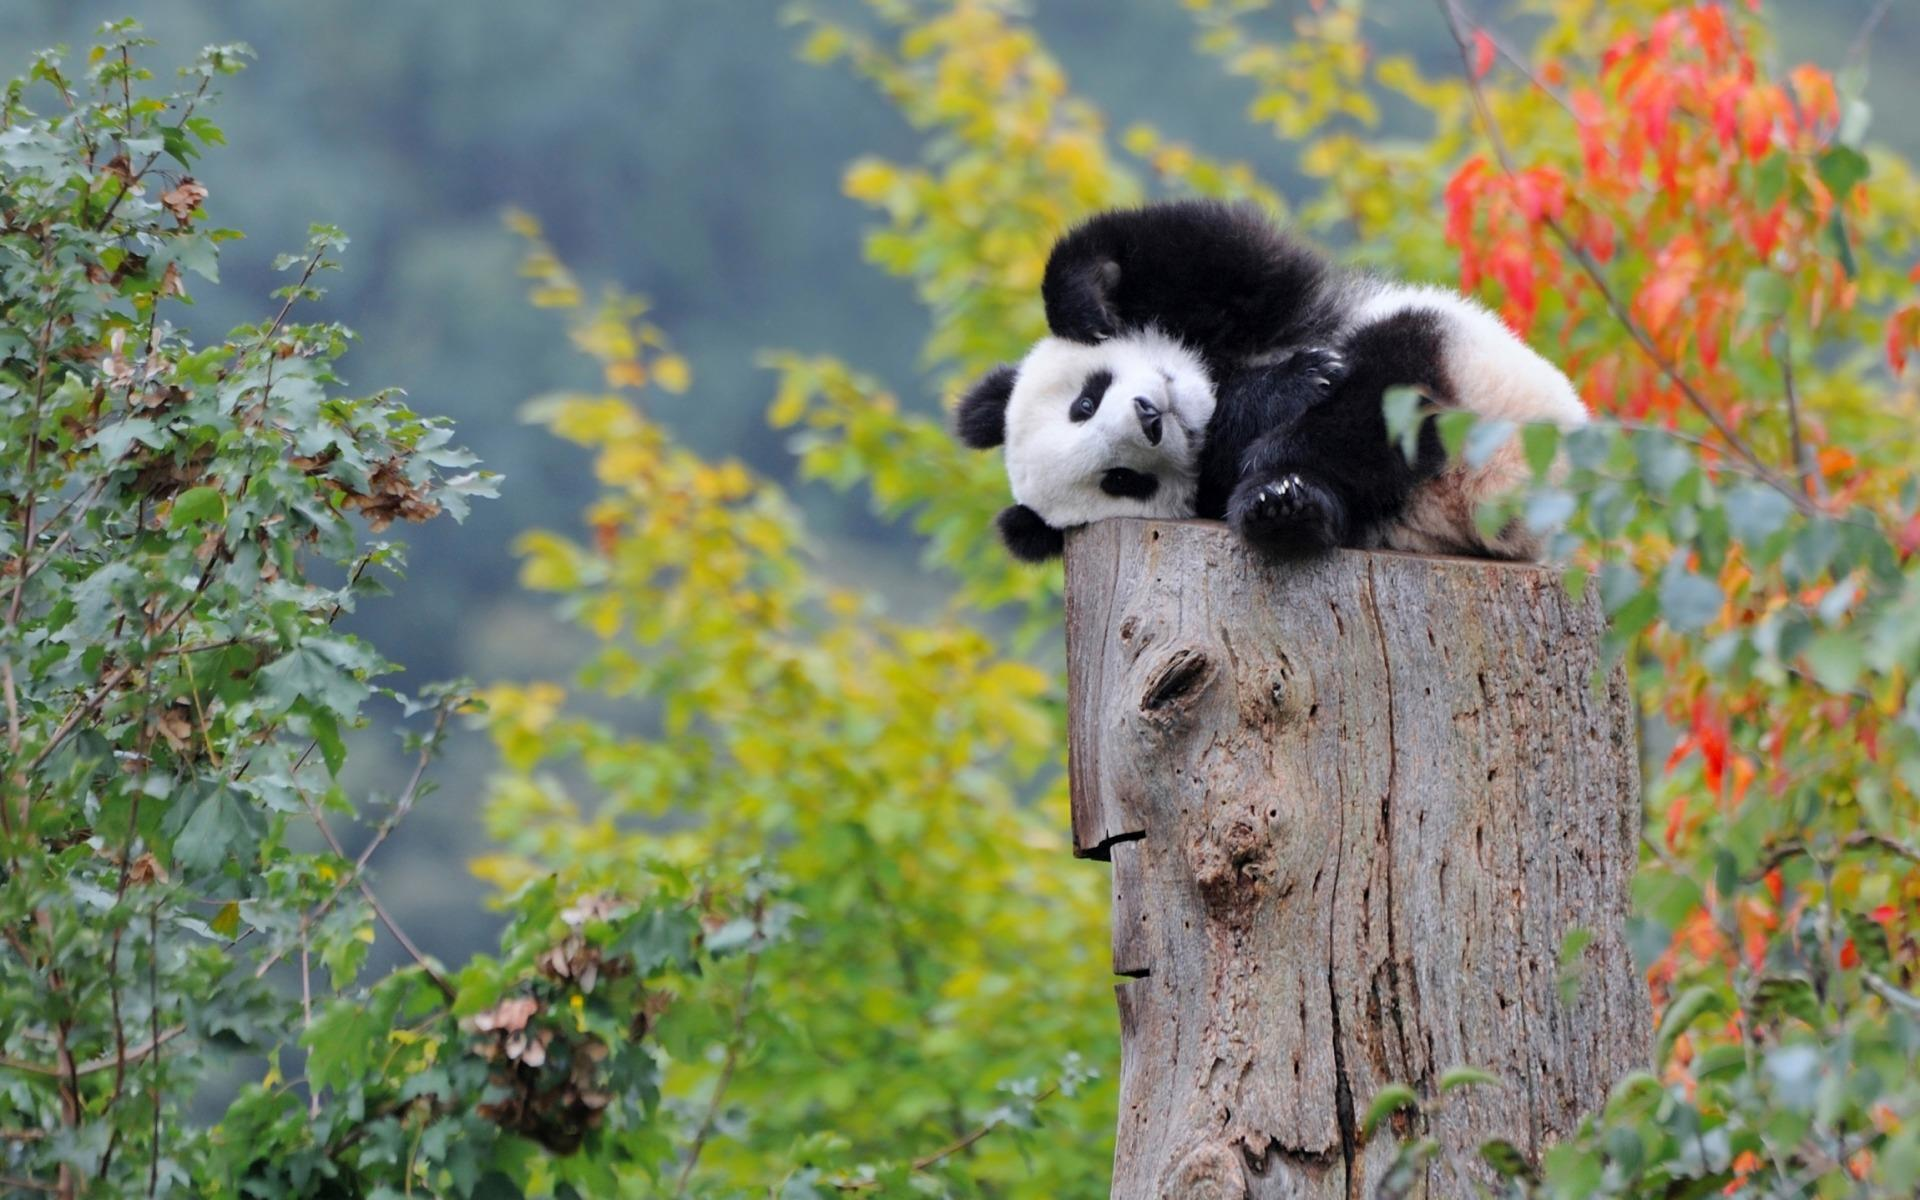 panda-windows-fonds-d-ecran_2